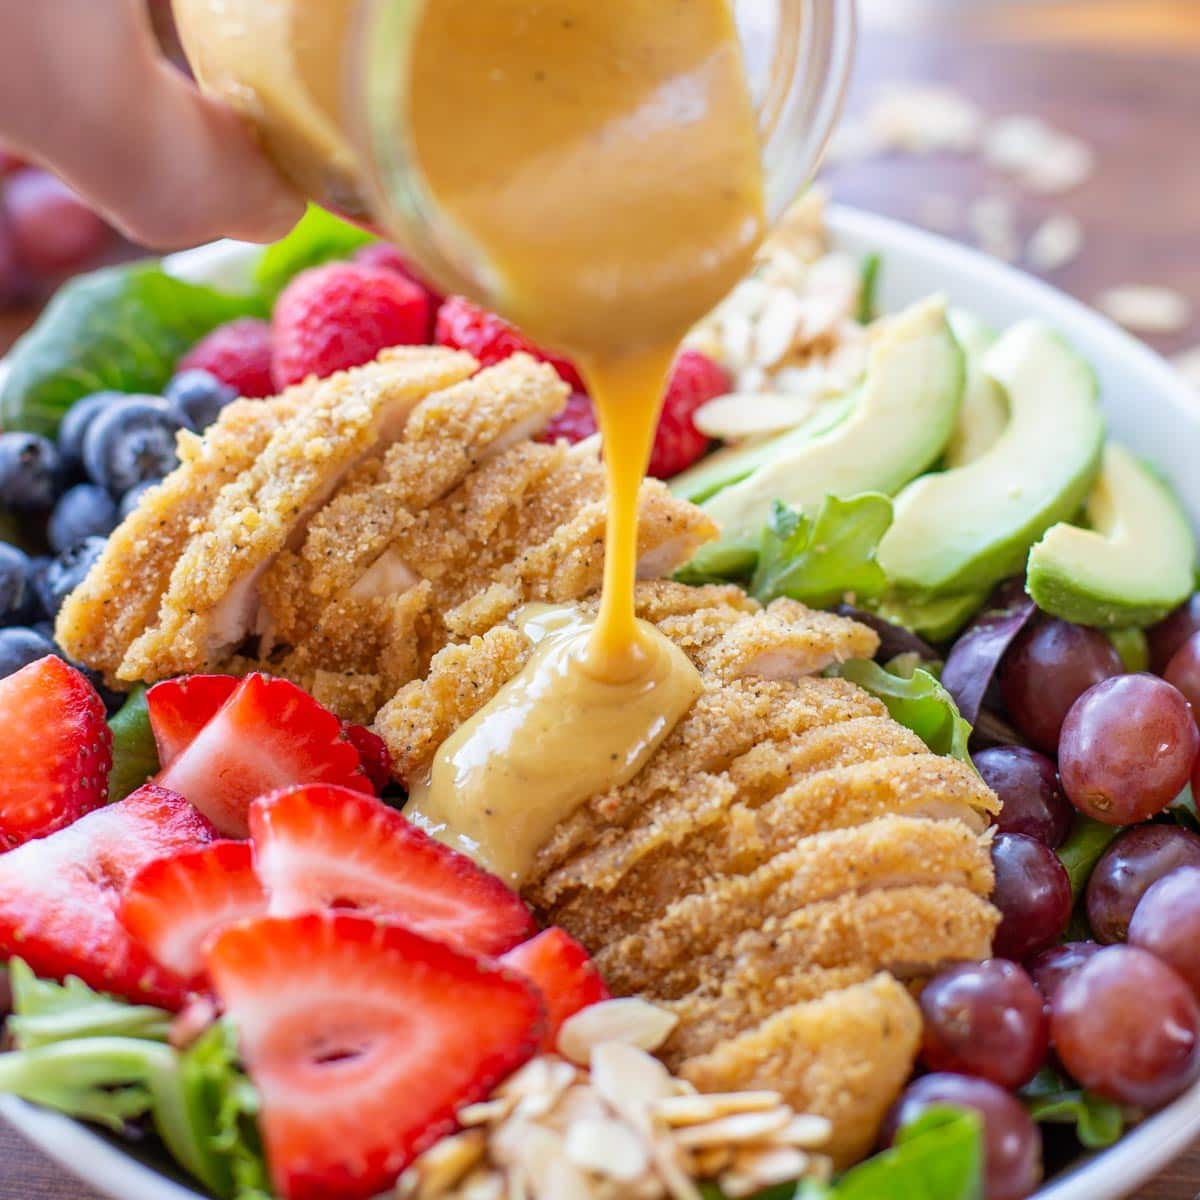 Pouring dressing over honey mustard chicken salad